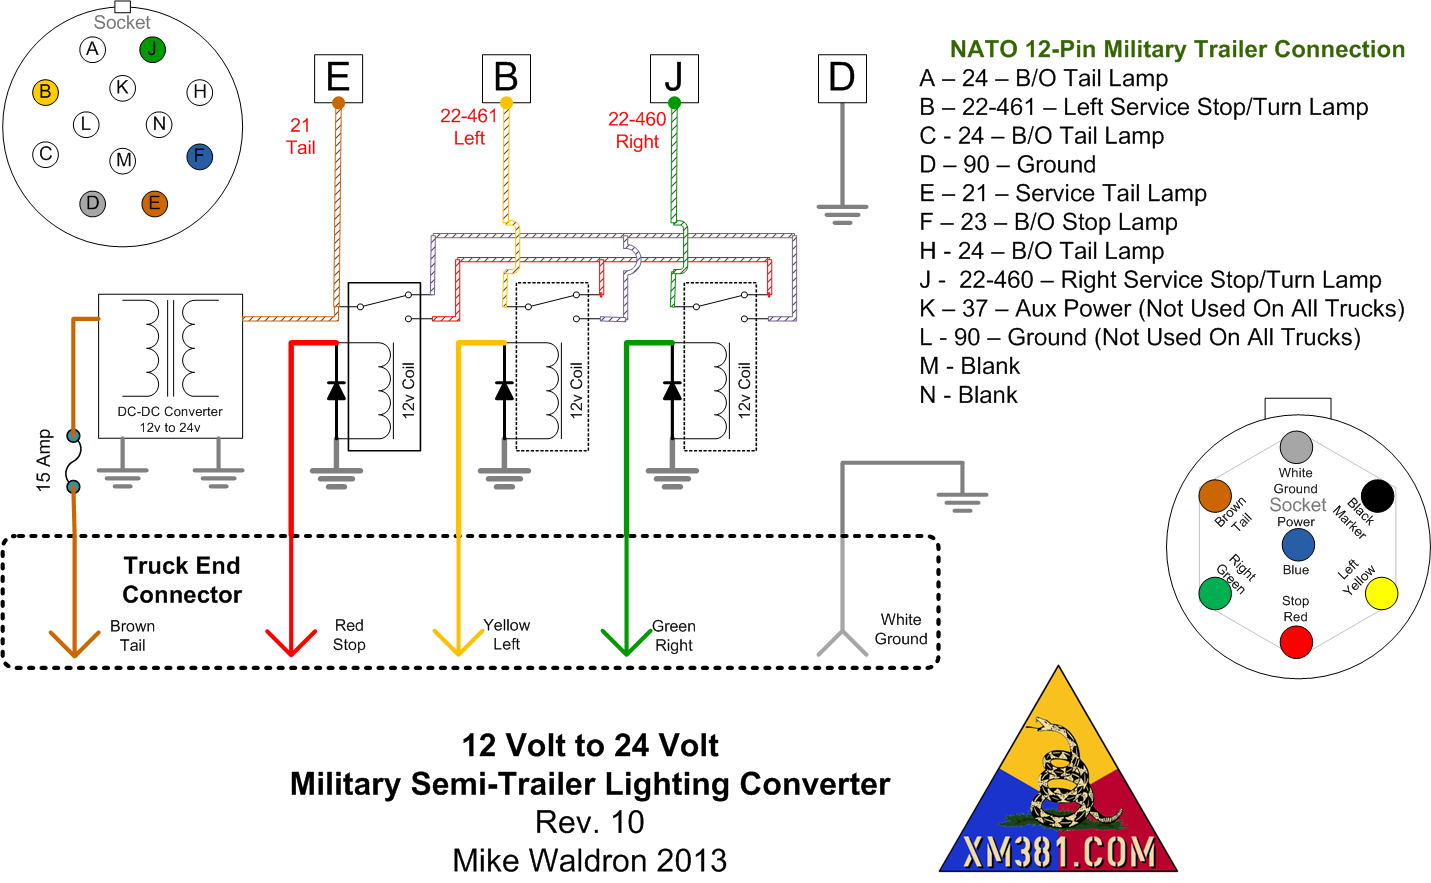 Tractor Trailer 7 Pin Wiring Diagram Electrical Diagrams Forum 4 Way For Lights 12 24v Semi House Symbols U2022 Rh Maxturner Co